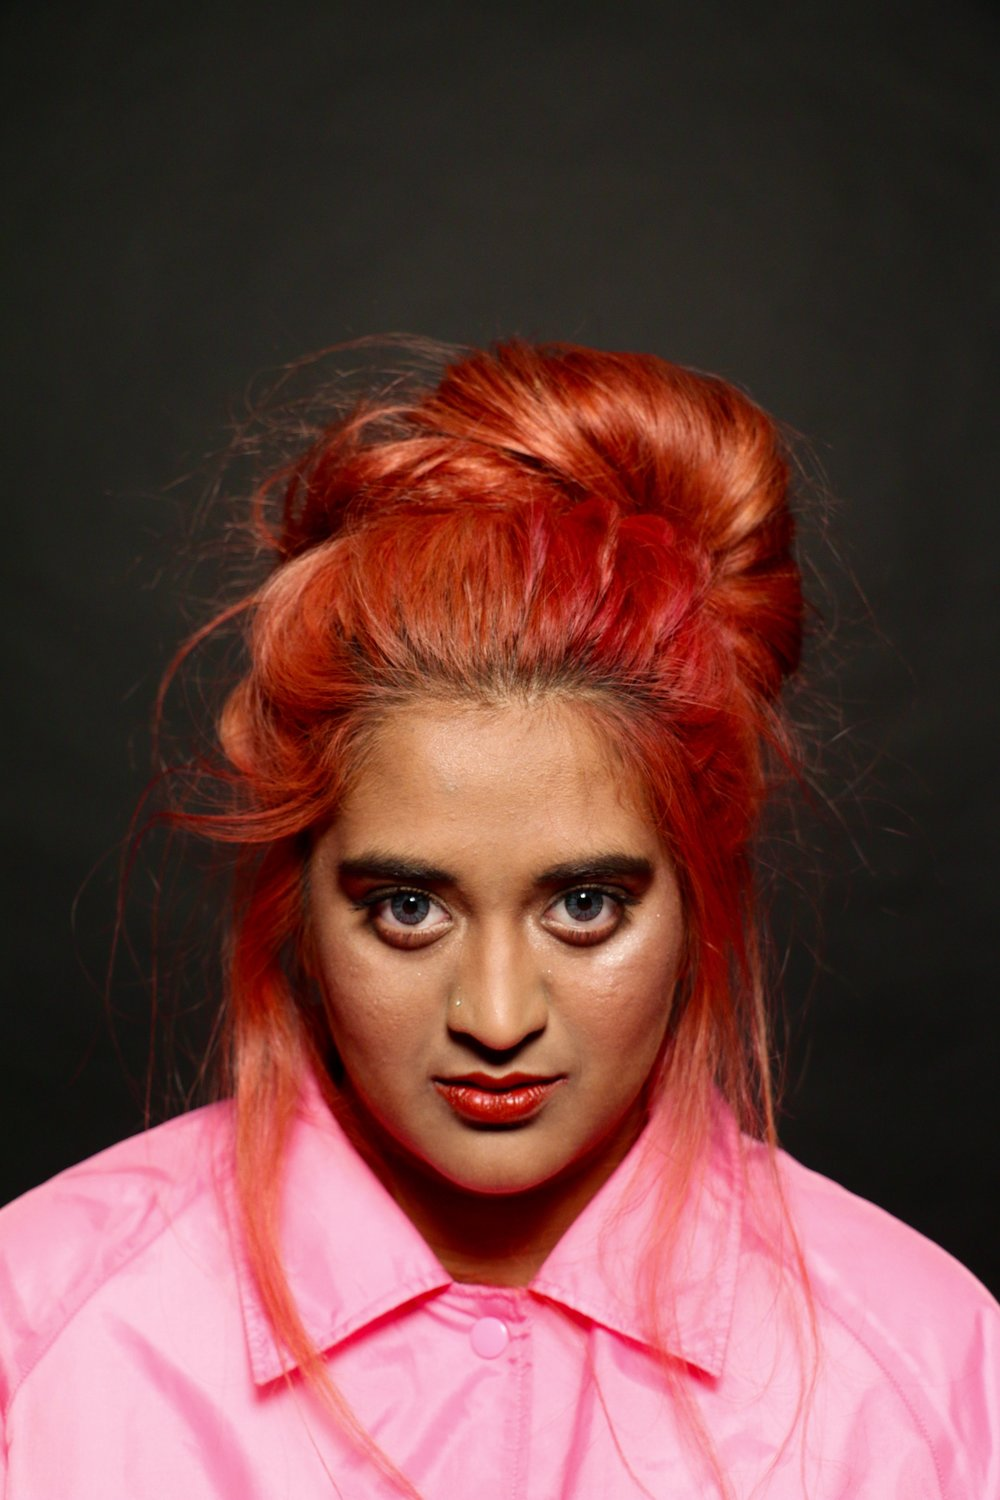 Shorna Haque stands out with her hot pink hair.